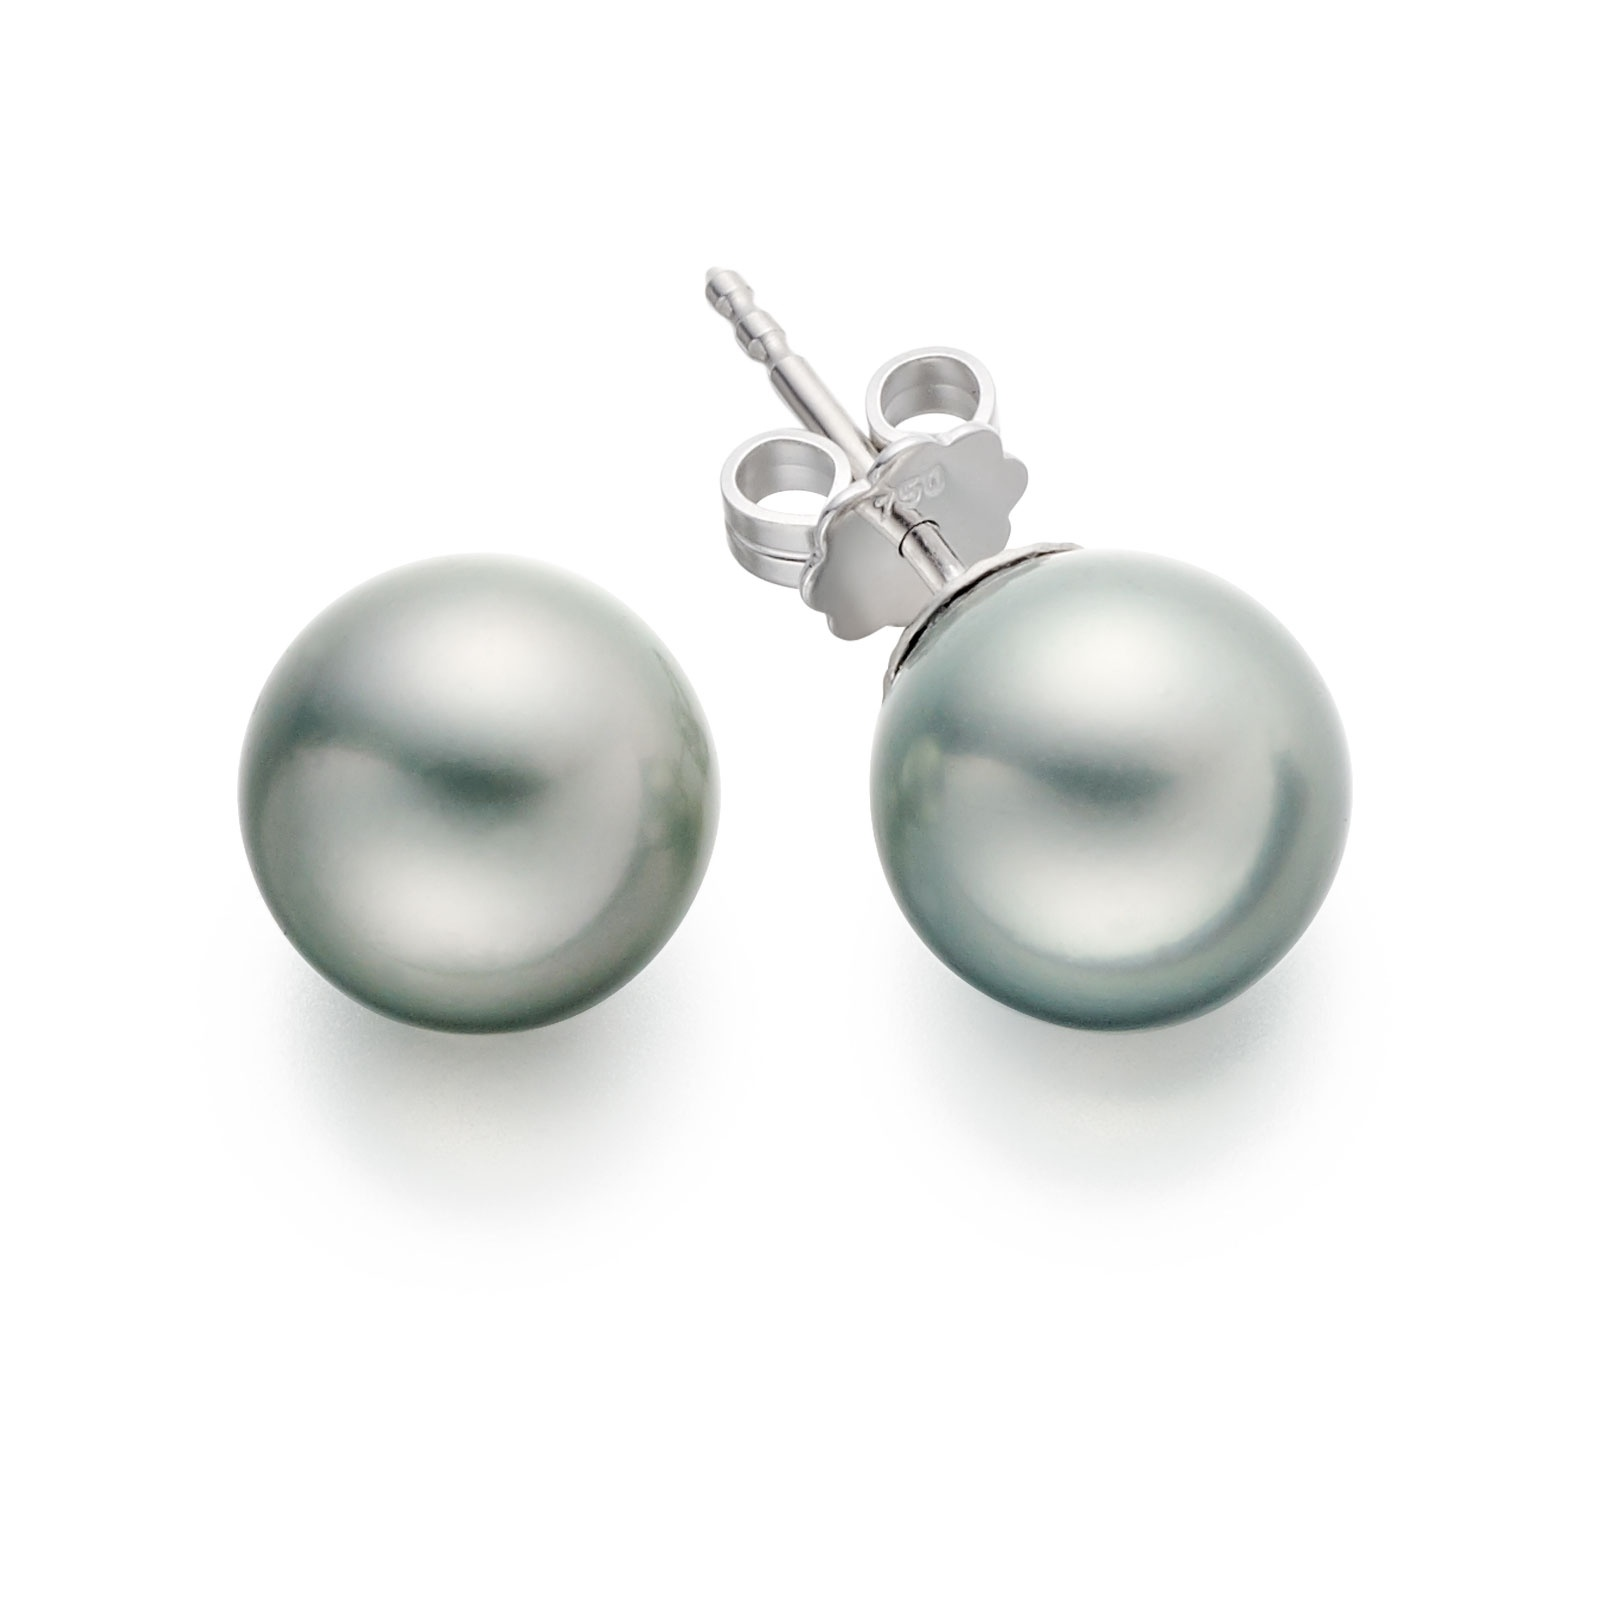 Tahitian Silver Pearl Stud Earrings with 18ct White Gold-TESRWG0046-1